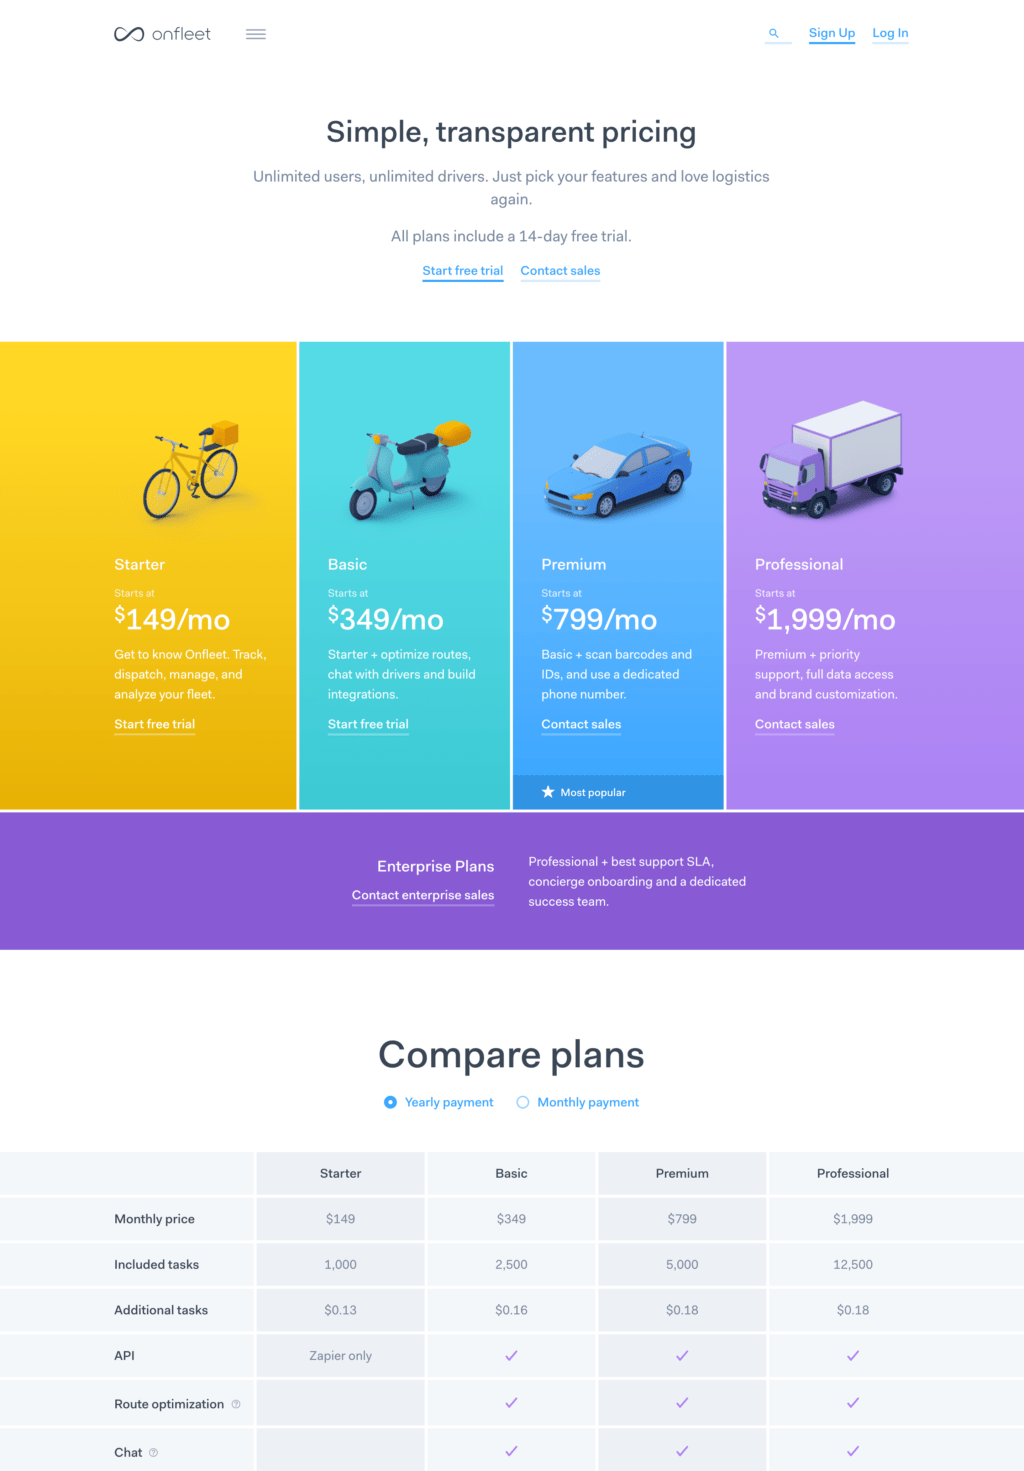 Feature And Usage-Based Pricing Page Examples: Onefleet Pricing Page